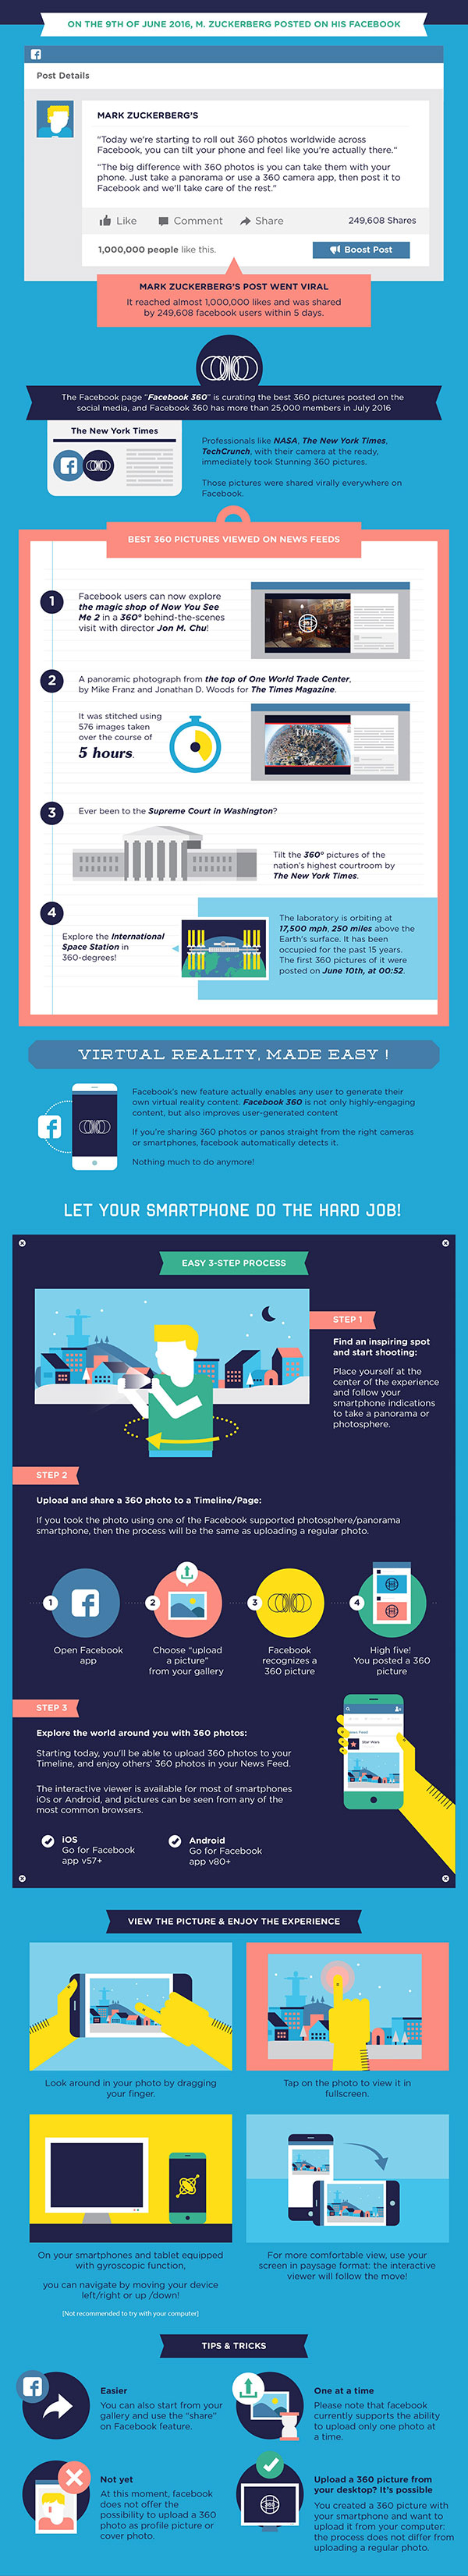 facebook-360-infographic